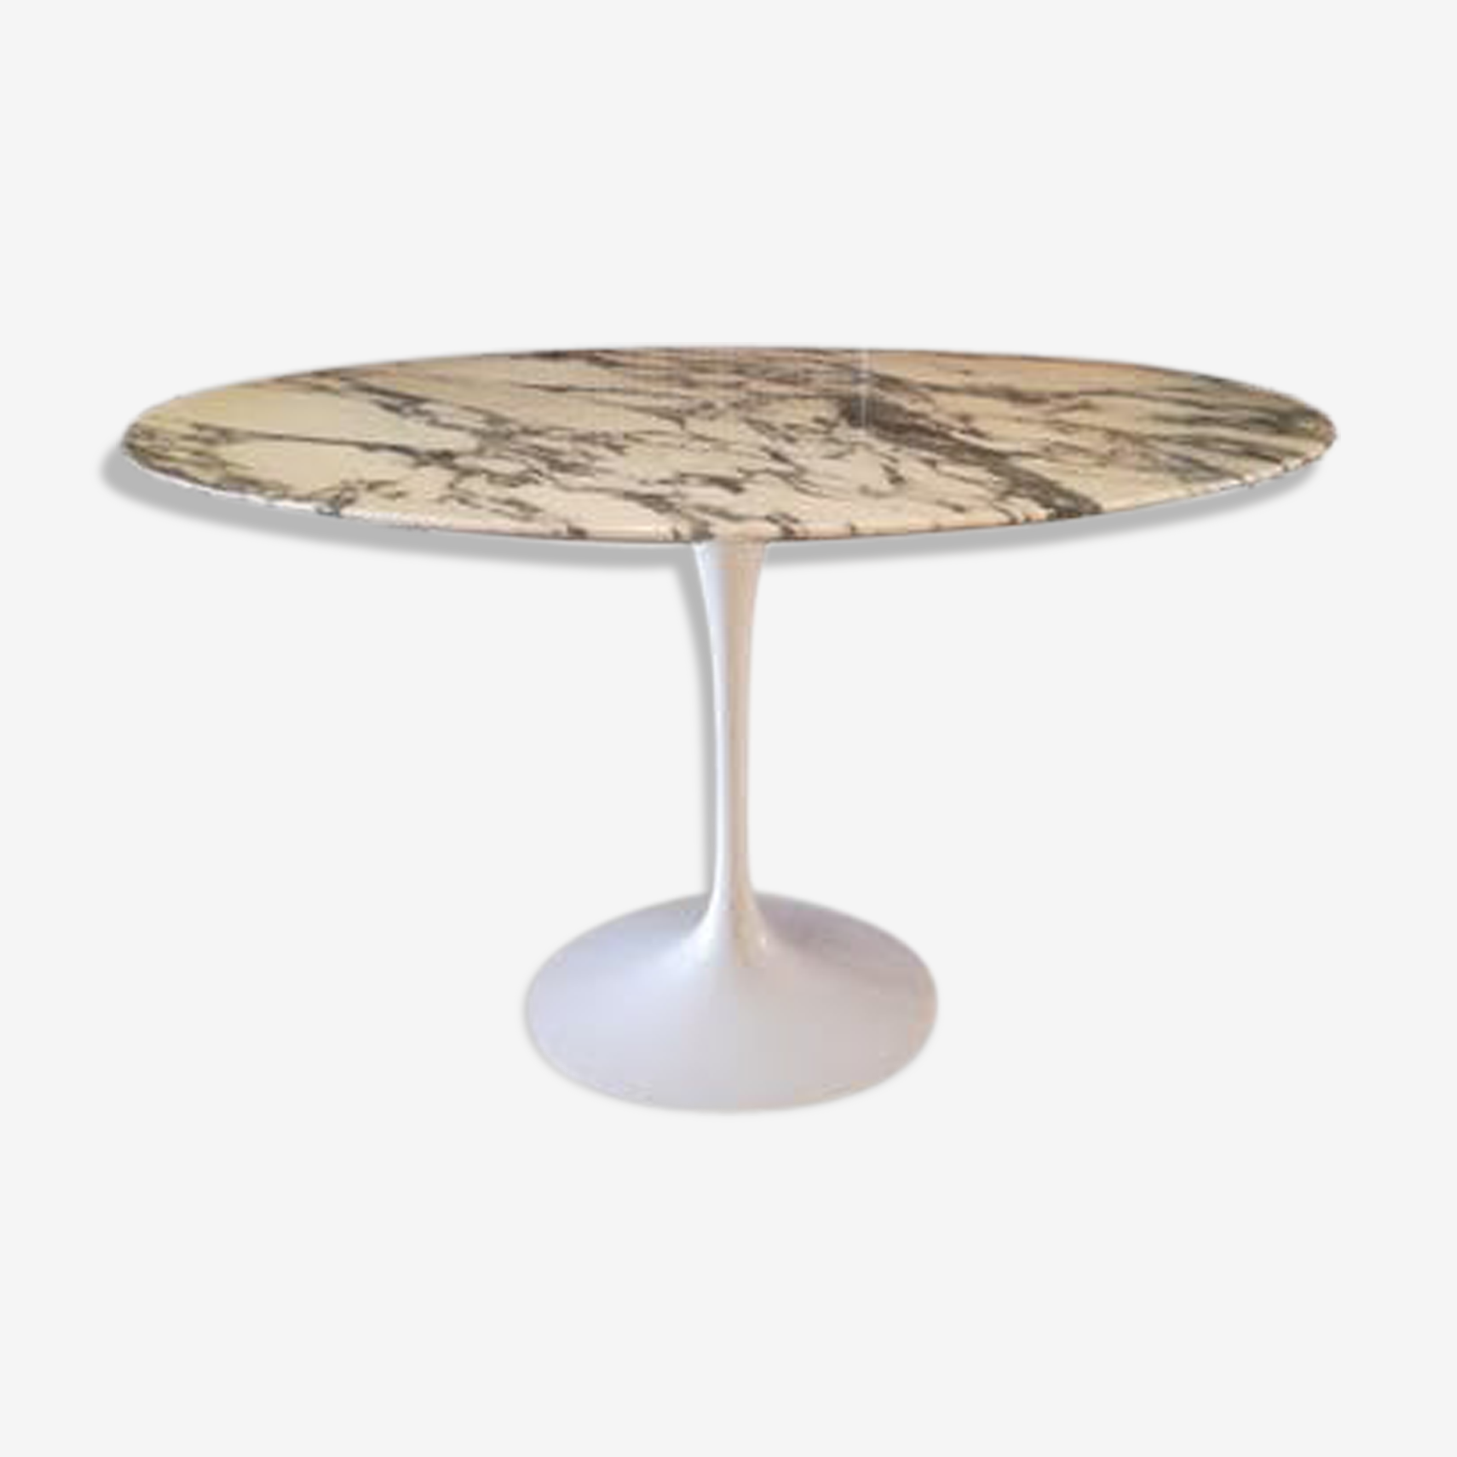 Table tulip Knoll par Eero Saarinen